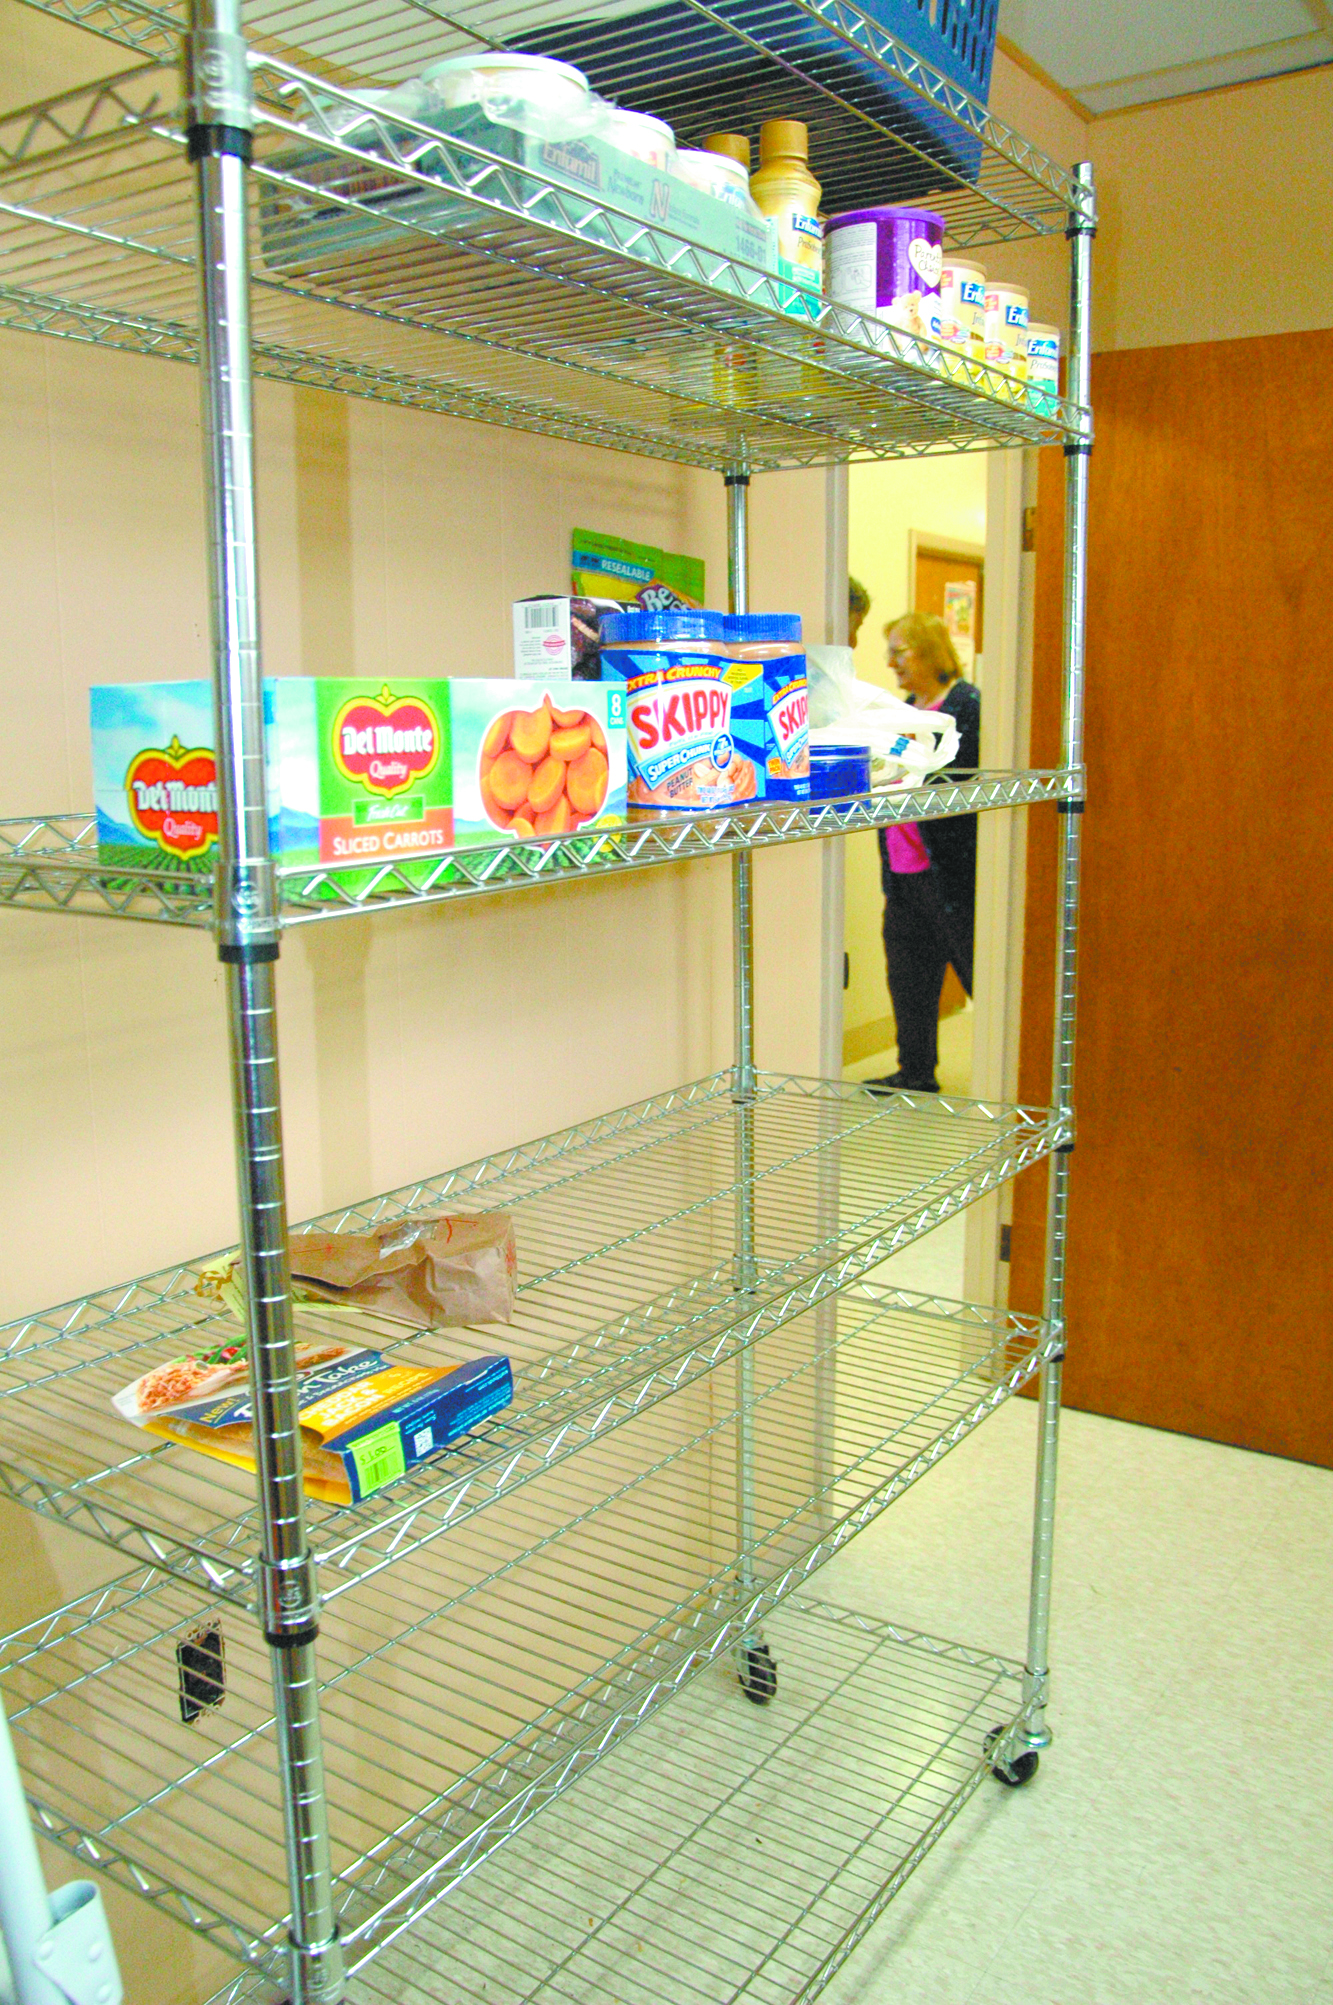 Food Pantry director: We need food